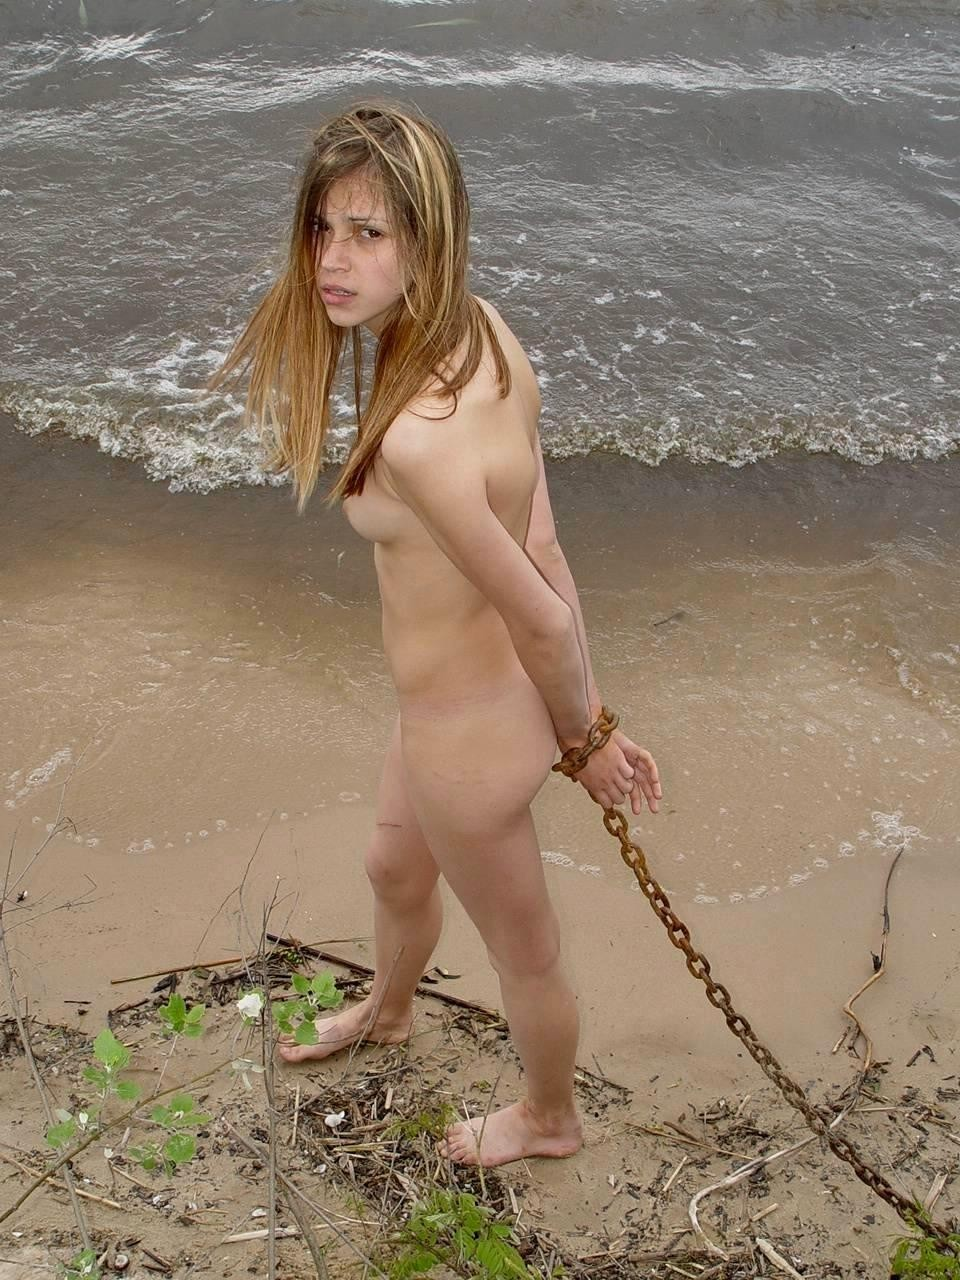 Slaves Girls Chained Tumblr - Xxgasm-2640